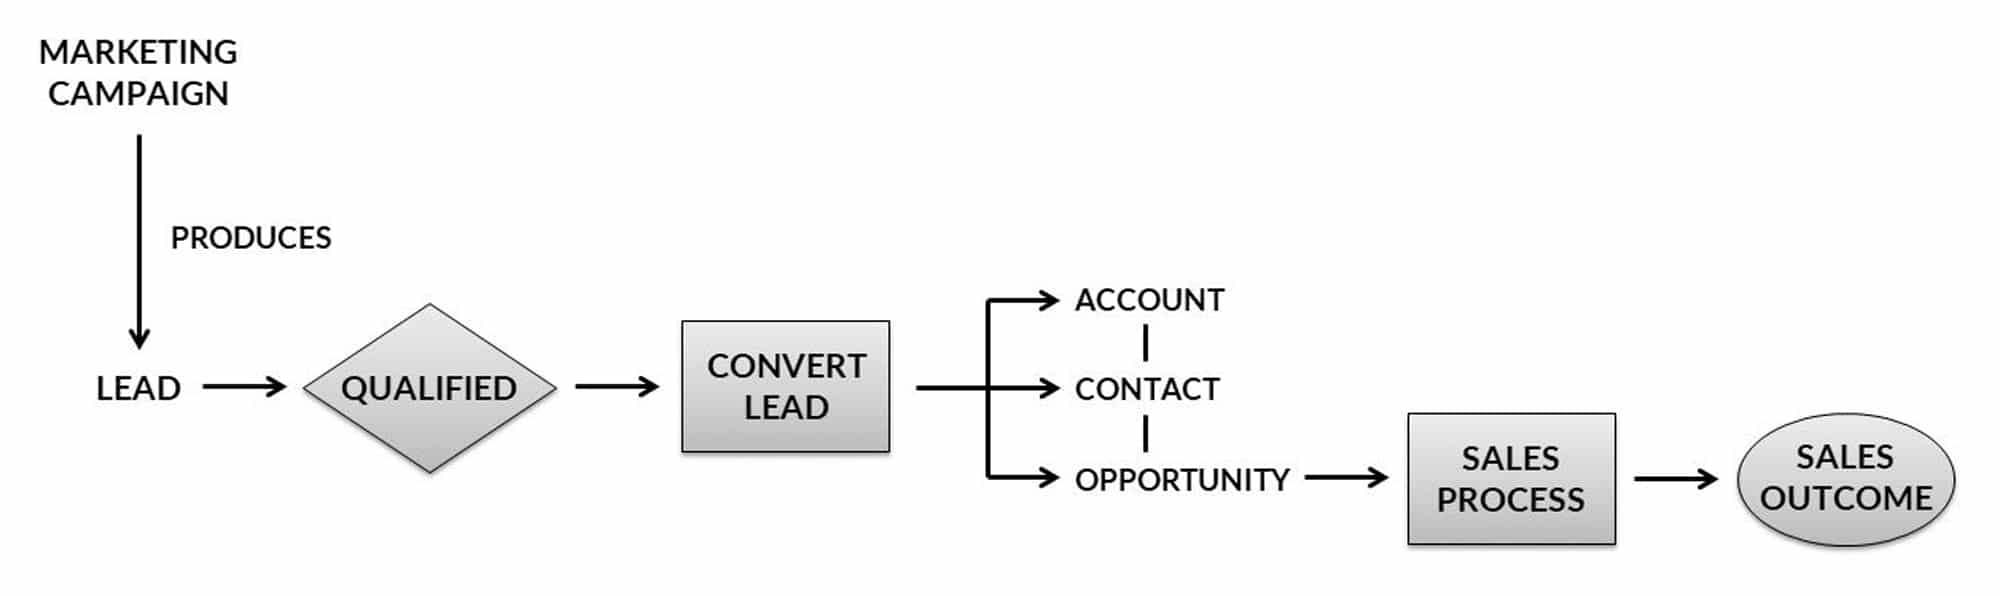 Lead conversion occurs when one person (usually in Marketing or Sales) 'converts' an existing lead into an Account, Contact, and Opportunity.  The Sales team pick up the Opportunity and drive it through the sales process.